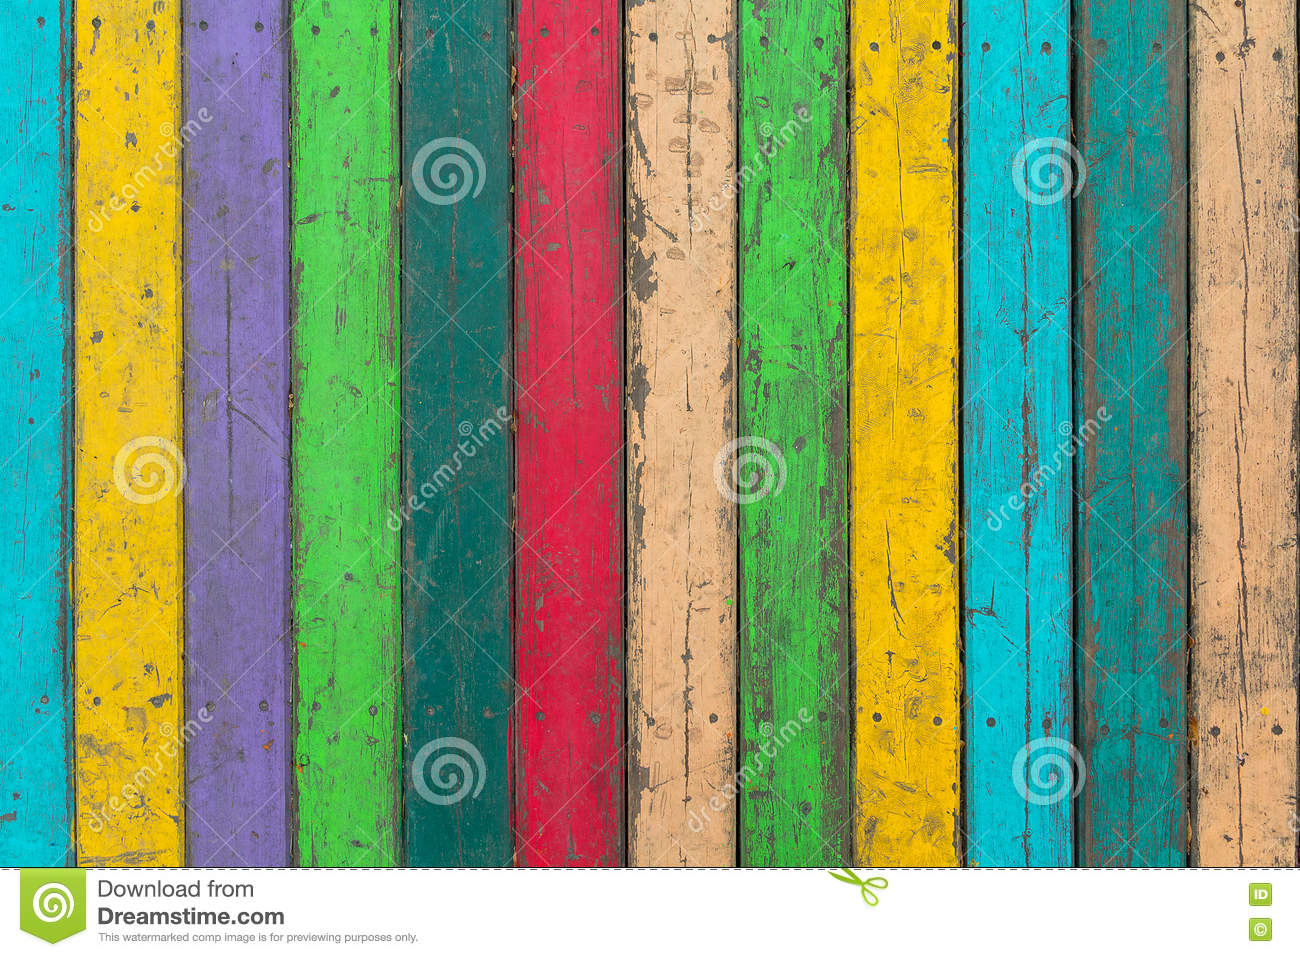 Multi-colored Wooden Floor Boards Stock Photo - Multi-colored Wooden Floor Boards Stock Photo - Image: 80866958